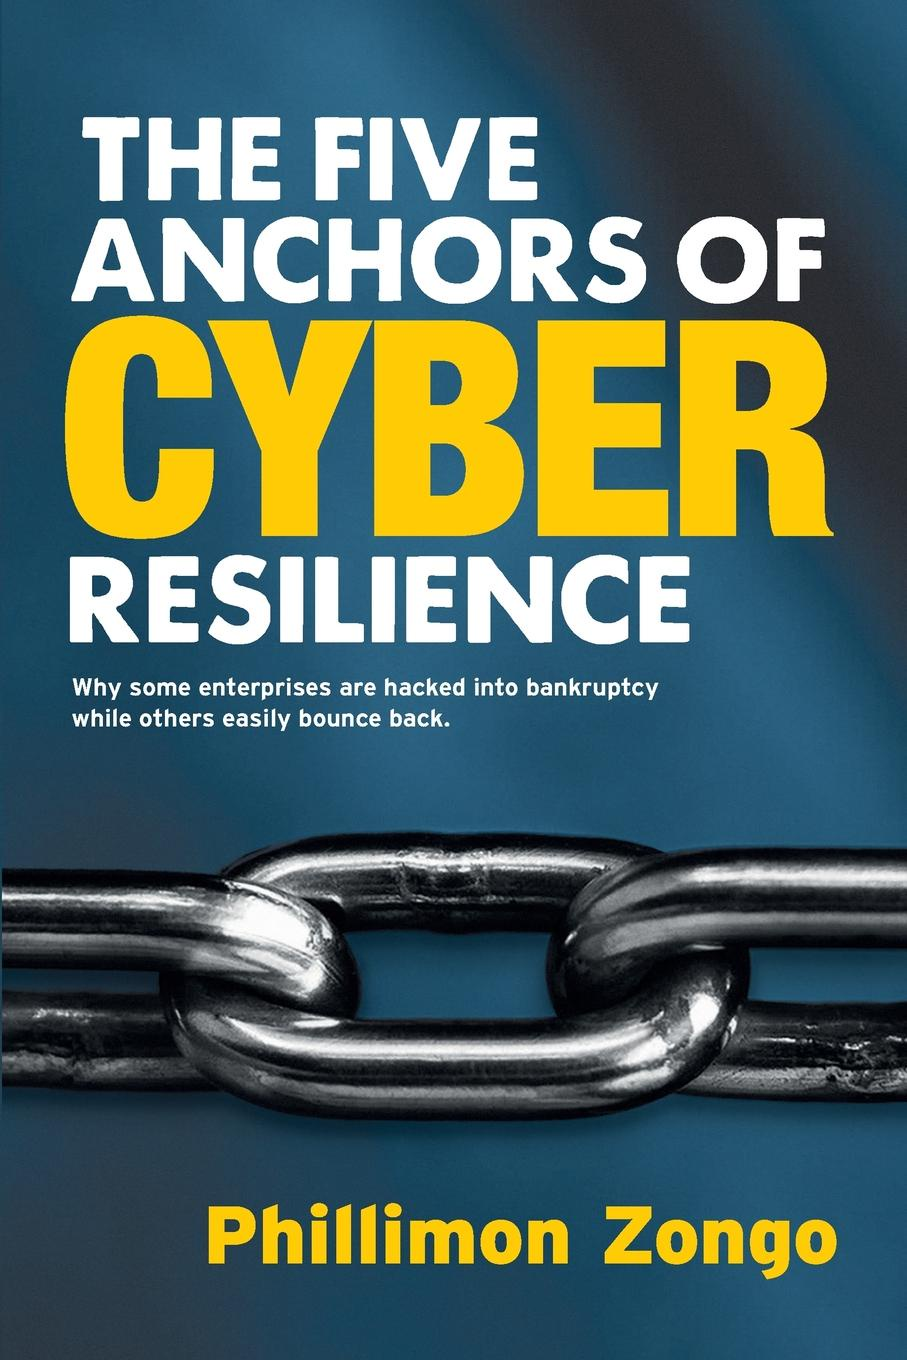 Phillimon Zongo The Five Anchors of Cyber Resilience. Why some enterprises are hacked into bankruptcy, while others easily bounce back cyber threat how to manage the growing risk of cyber attacks